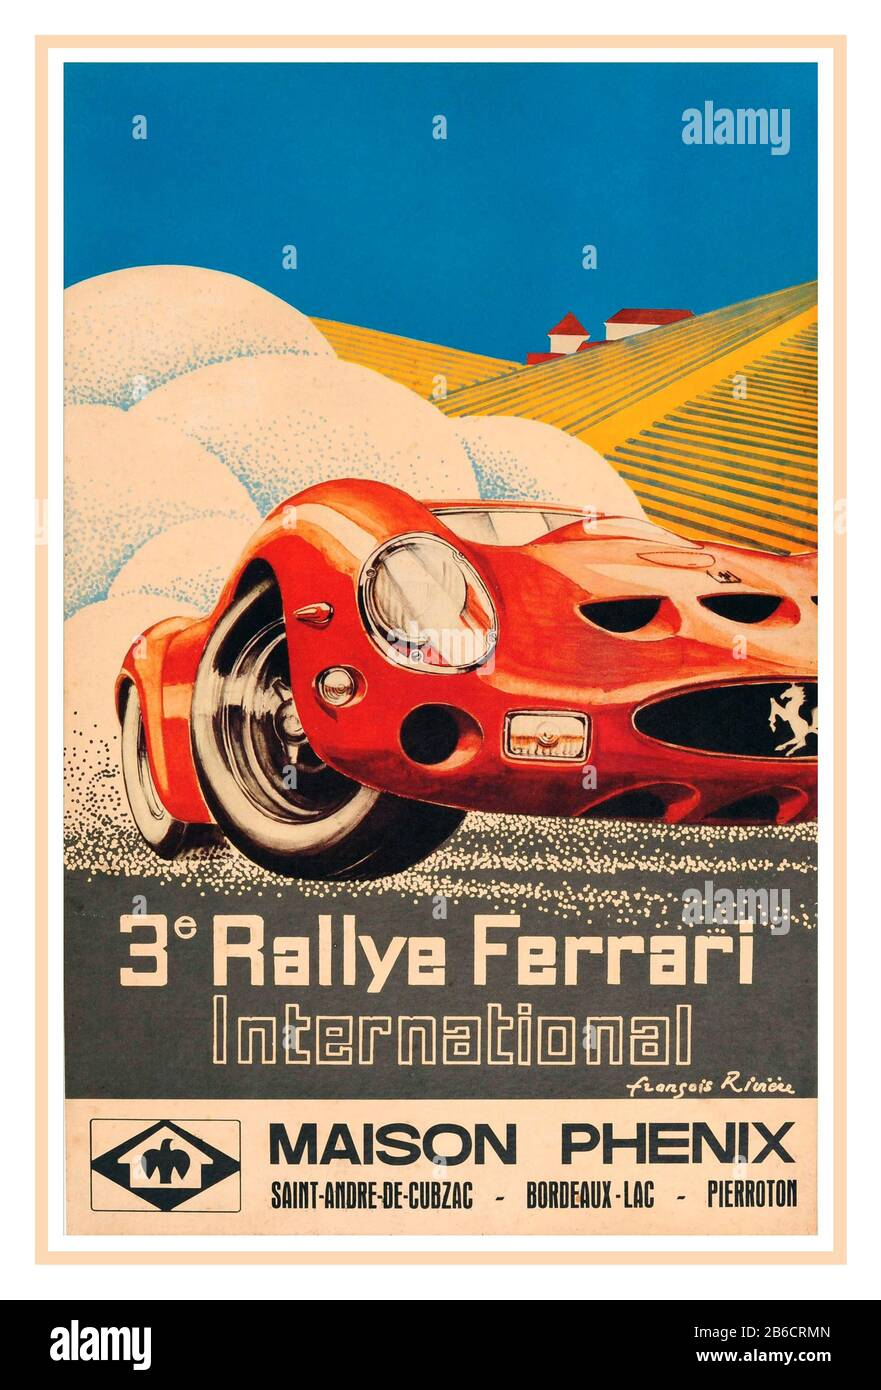 Vintage Ferrari 250 Gto International Rally Maison Phenix San Andre De Cubzac Bordeaux Lac Pierroton Poster 1960s Vintage Poster Art By Francois Riviere Original Vintage Car Racing Poster In French For The